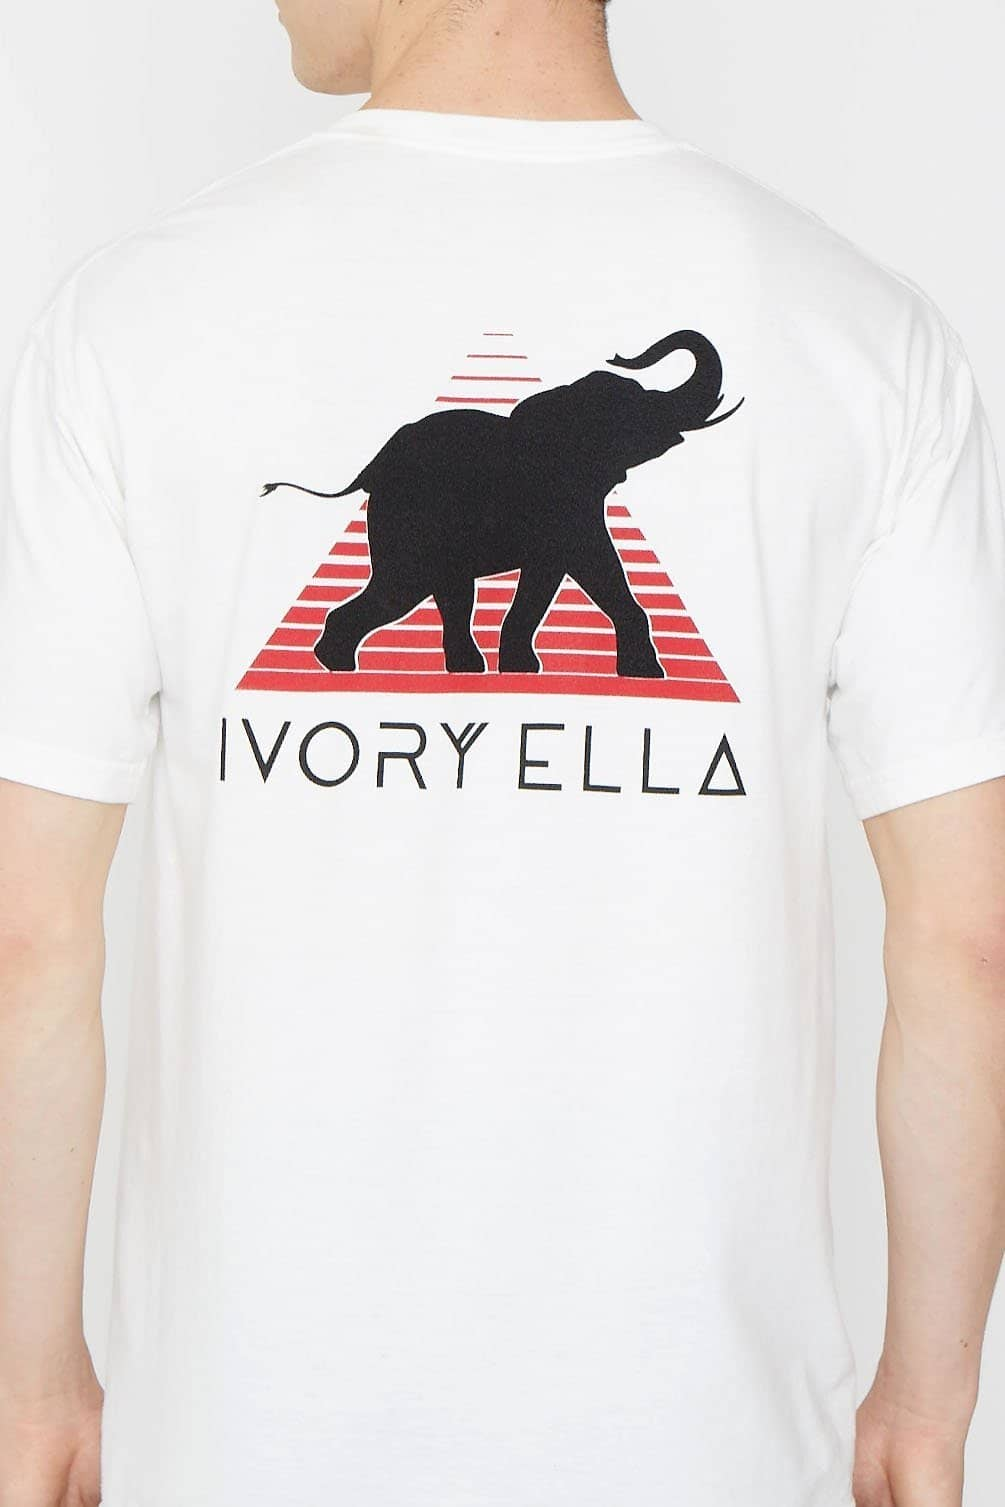 Ivory Ella S Soft White Feeling Lucky Classic Fit Tee